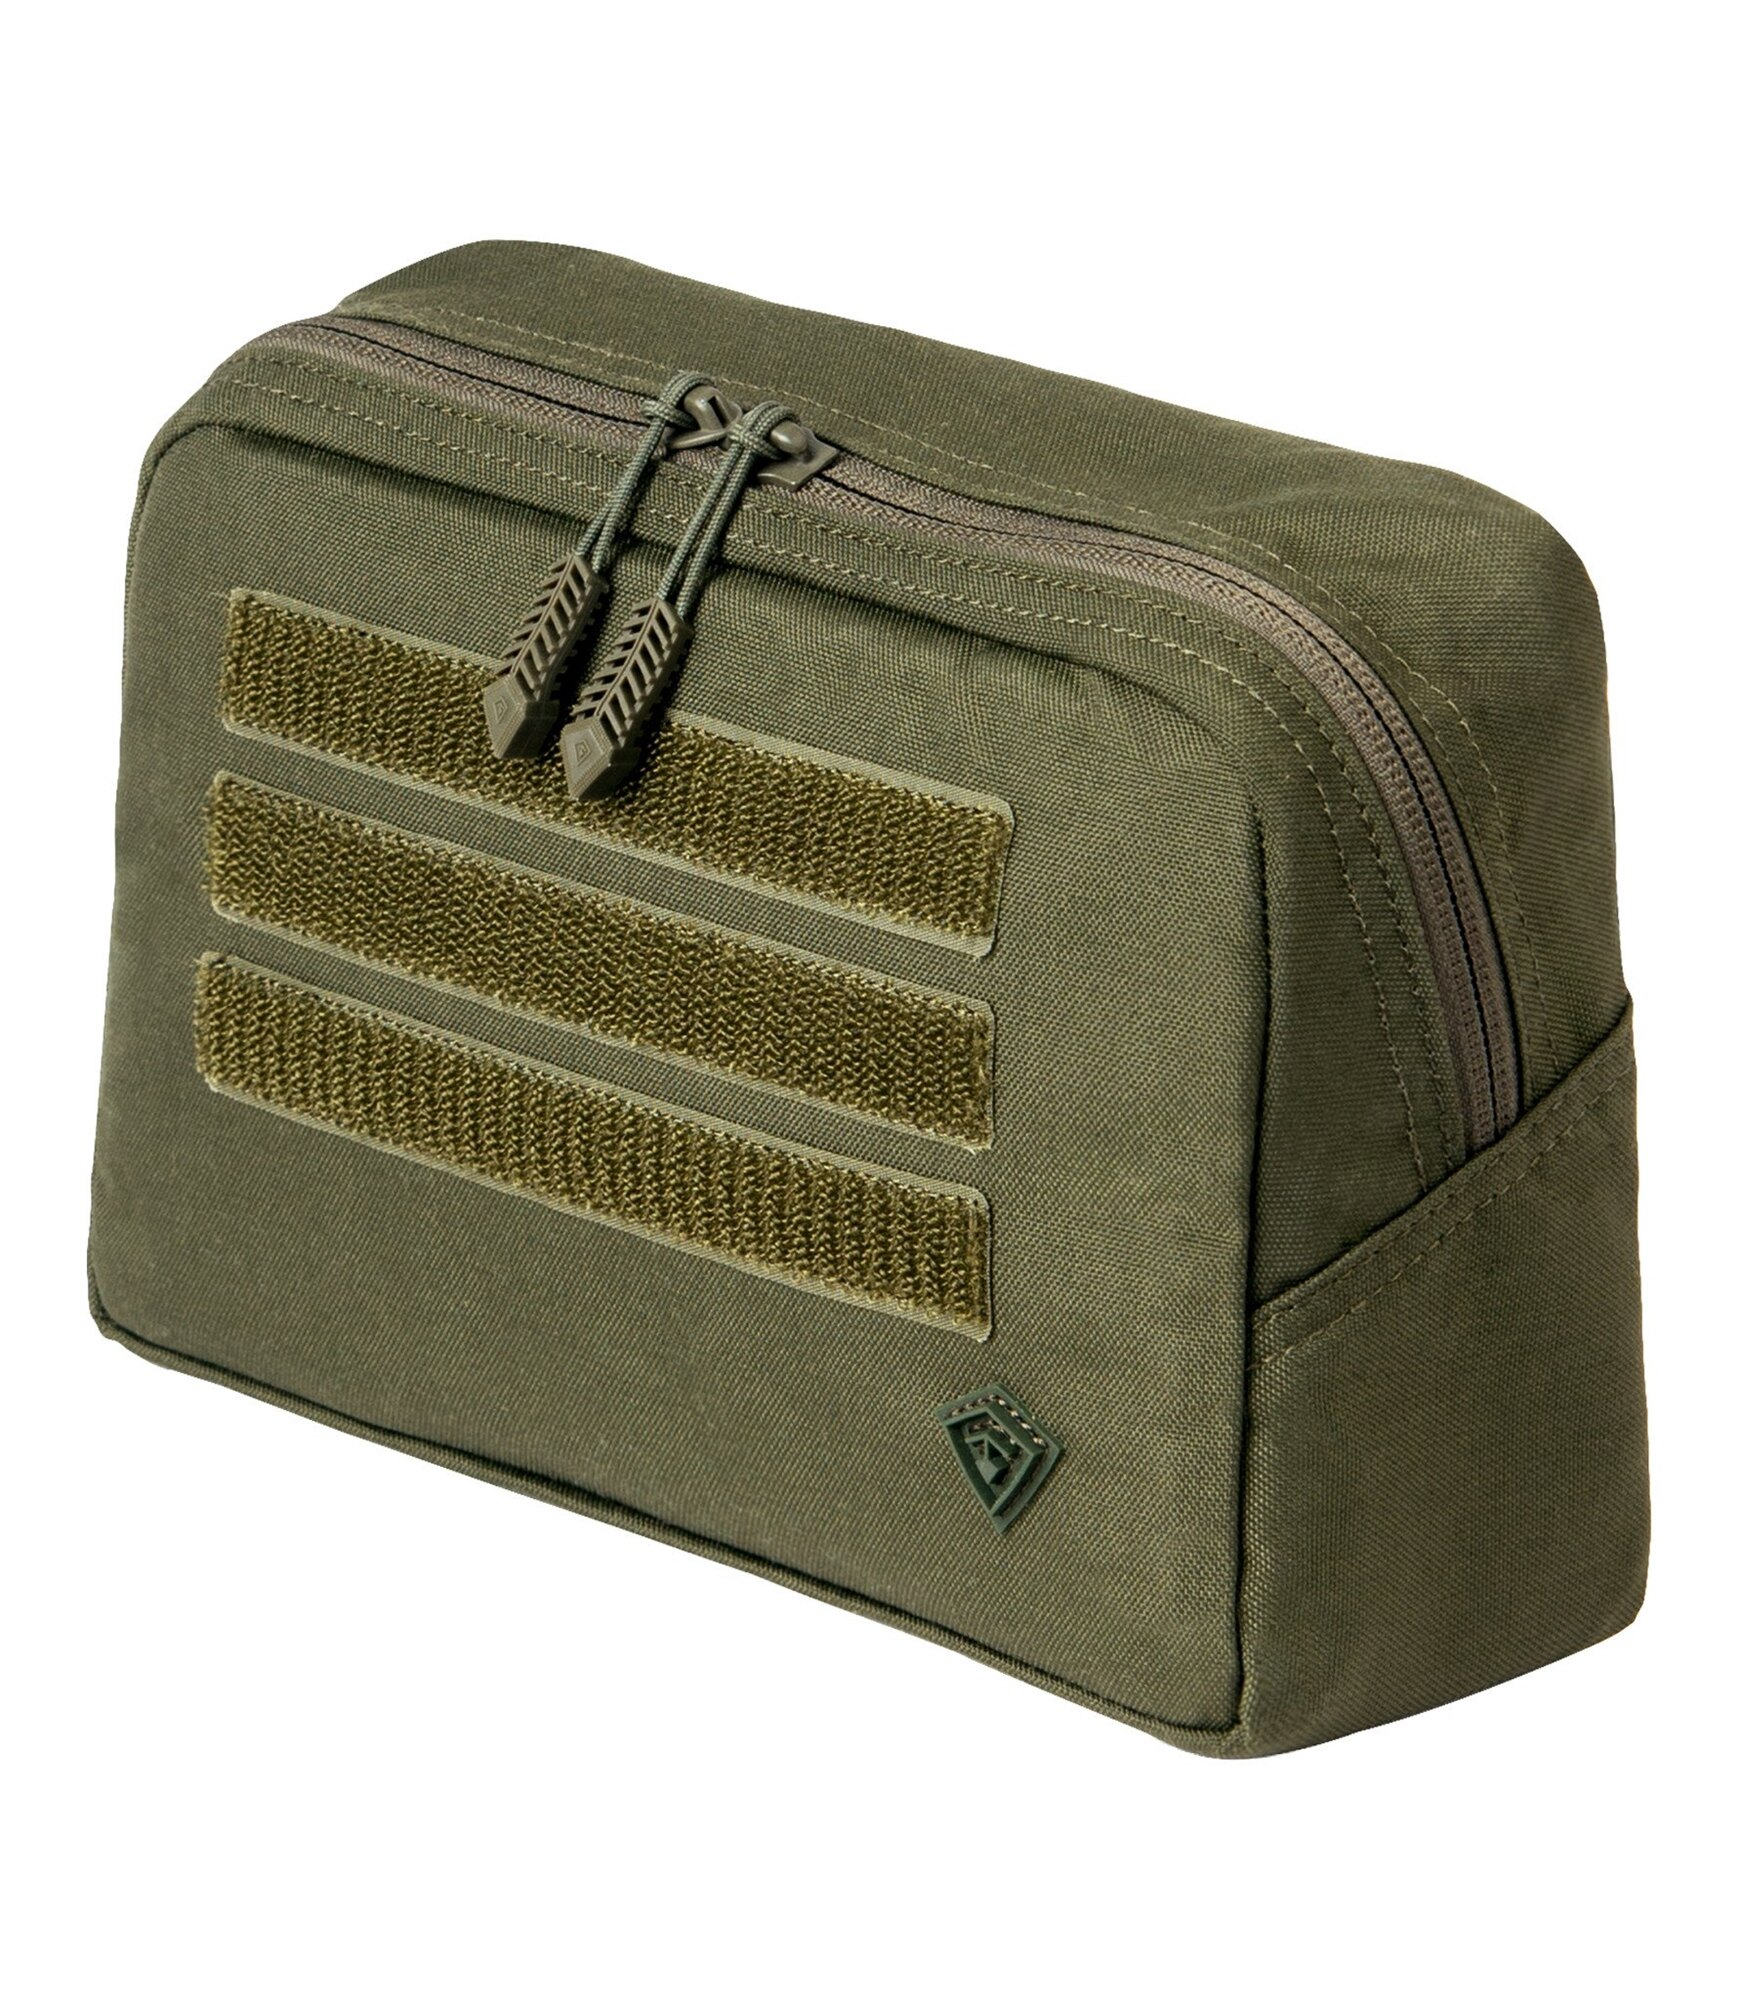 Puzdro Tactix 9x6 Utility First Tactical® - Olive Green (Farba: Olive Green )